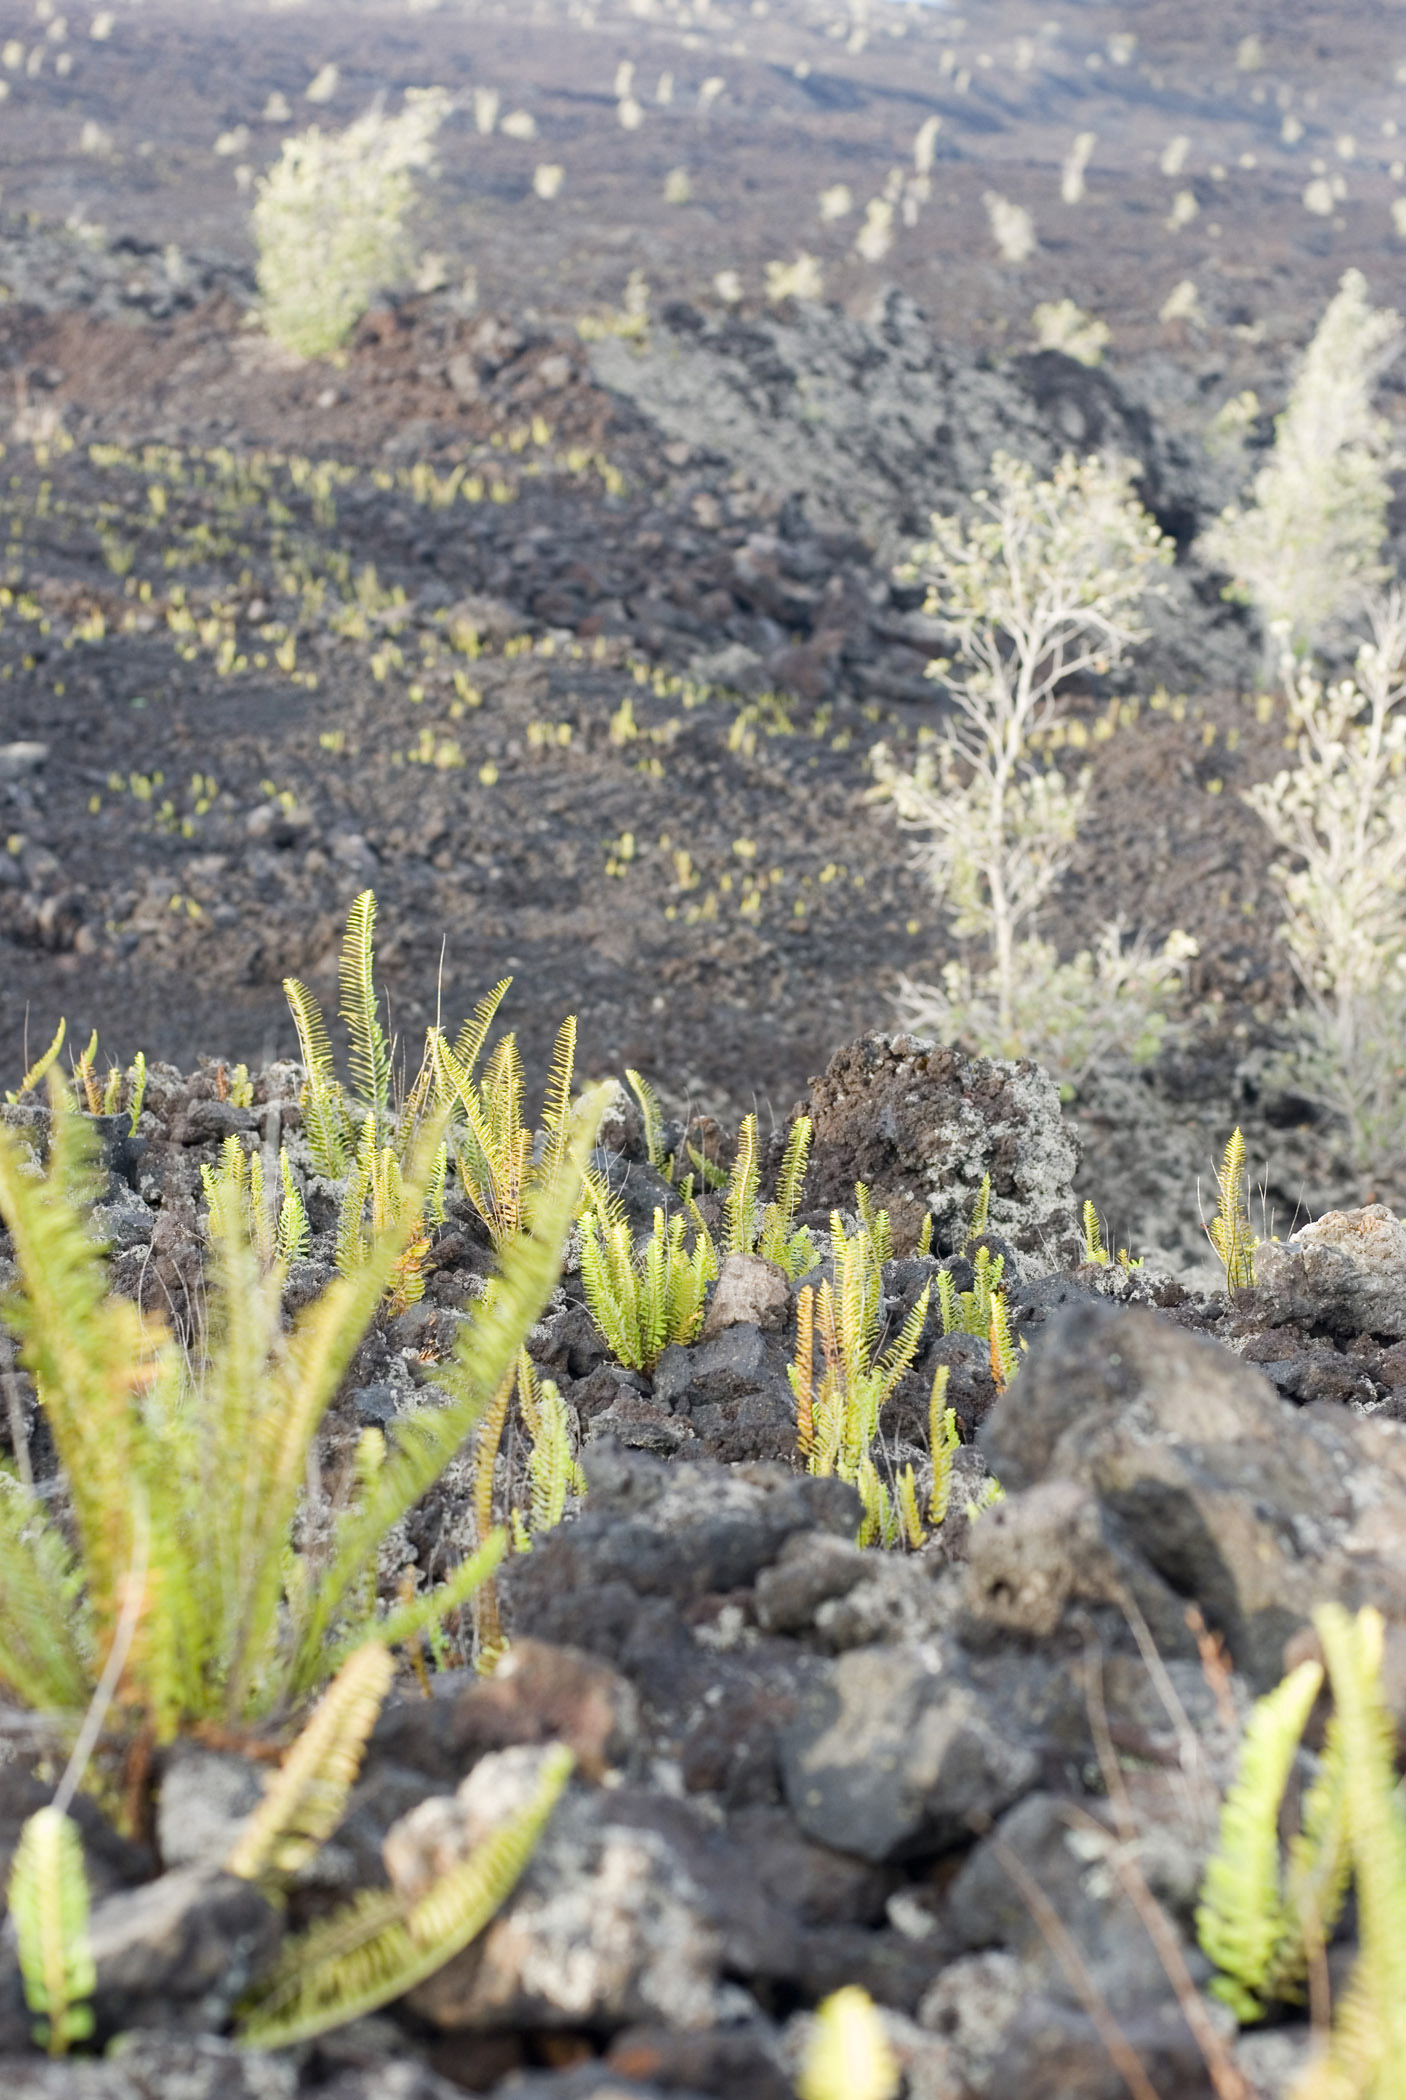 Close up Small Green Plants Growing on Volcanic Lava Field.